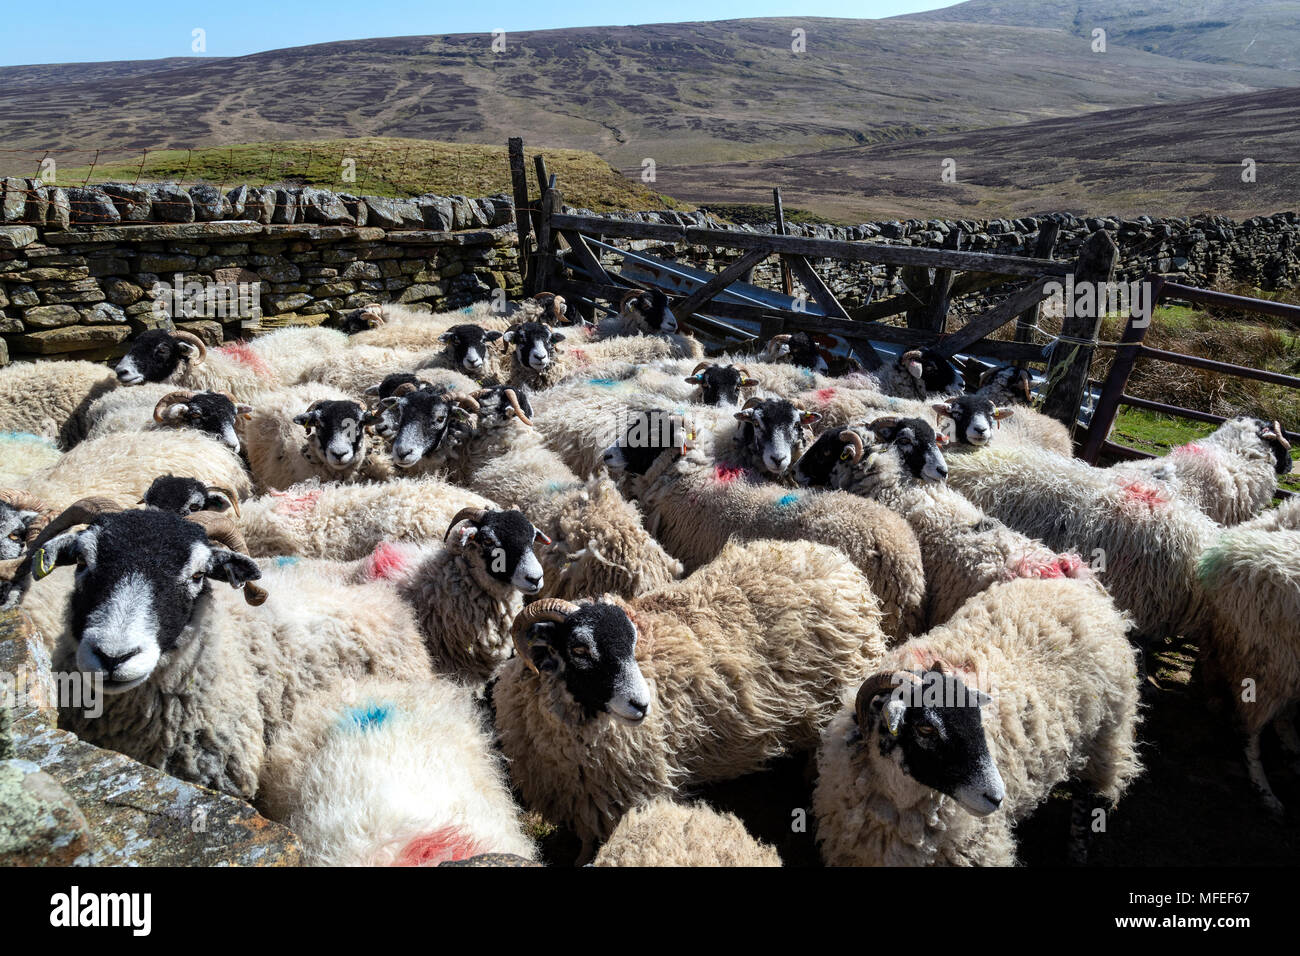 Swaledale sheep in the Yorkshire Dales in northeast England. - Stock Image